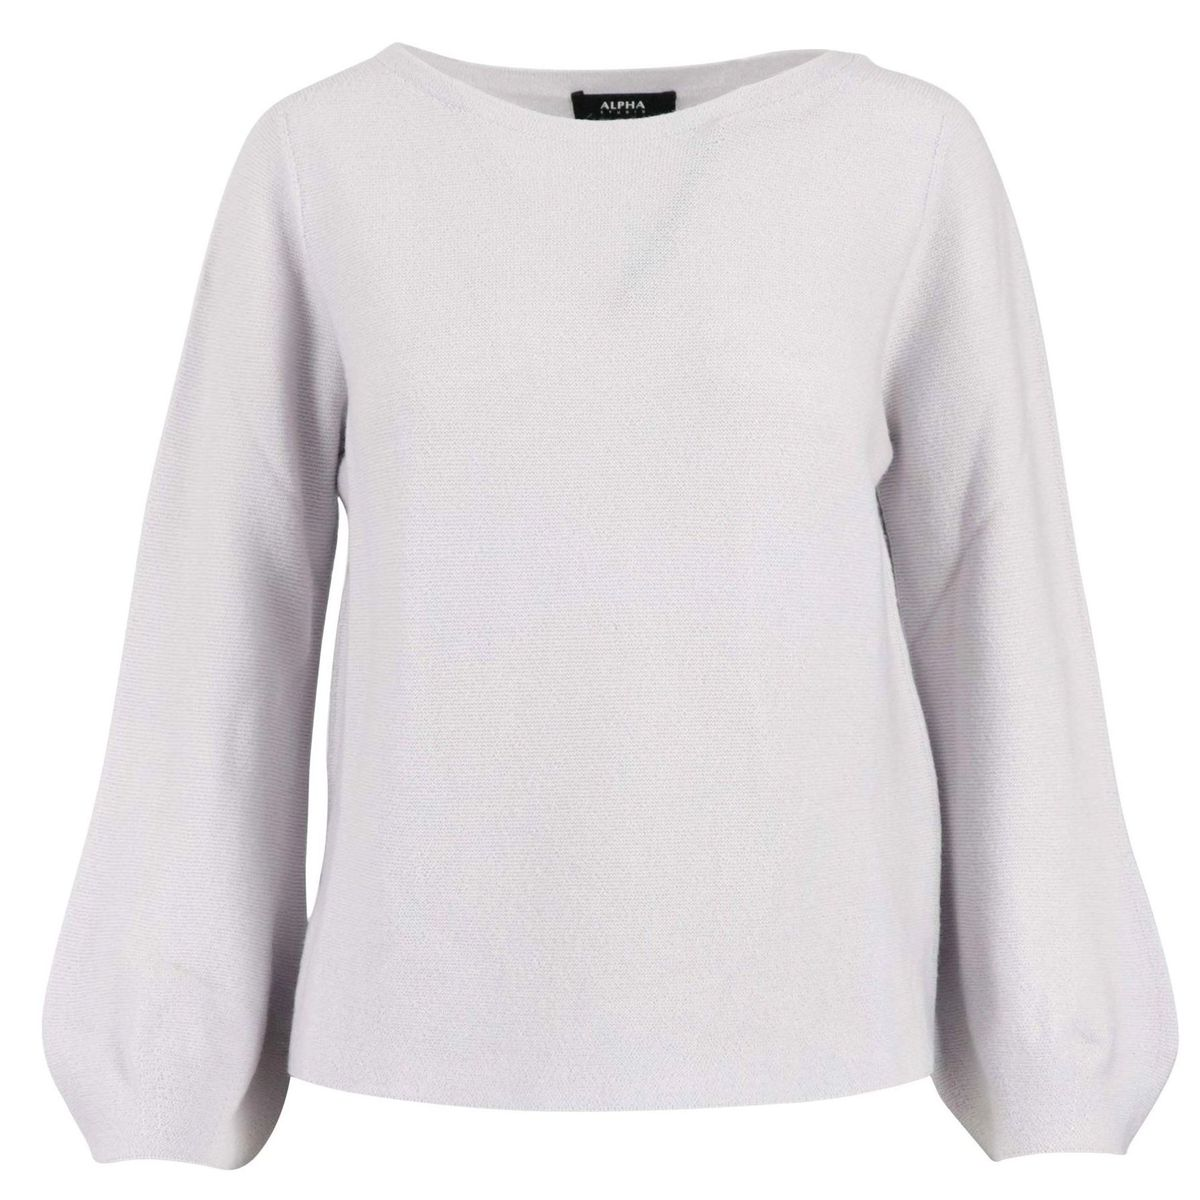 Crewneck sweater in wool with wide sleeves Putty Alpha Studio